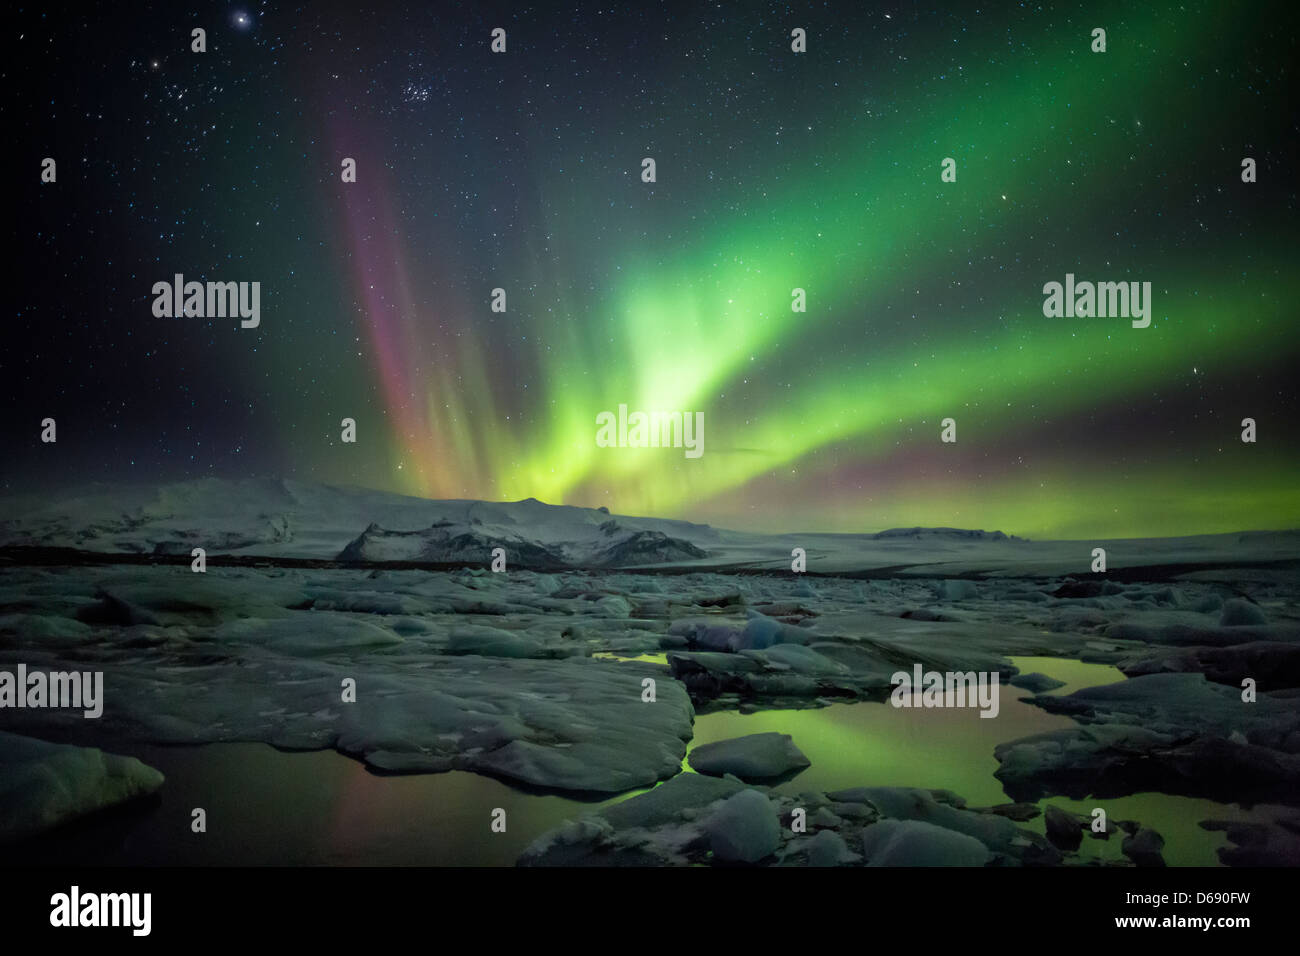 Aurora Borealis or Northern Lighs, over the Jokulsarlon, Iceland - Stock Image